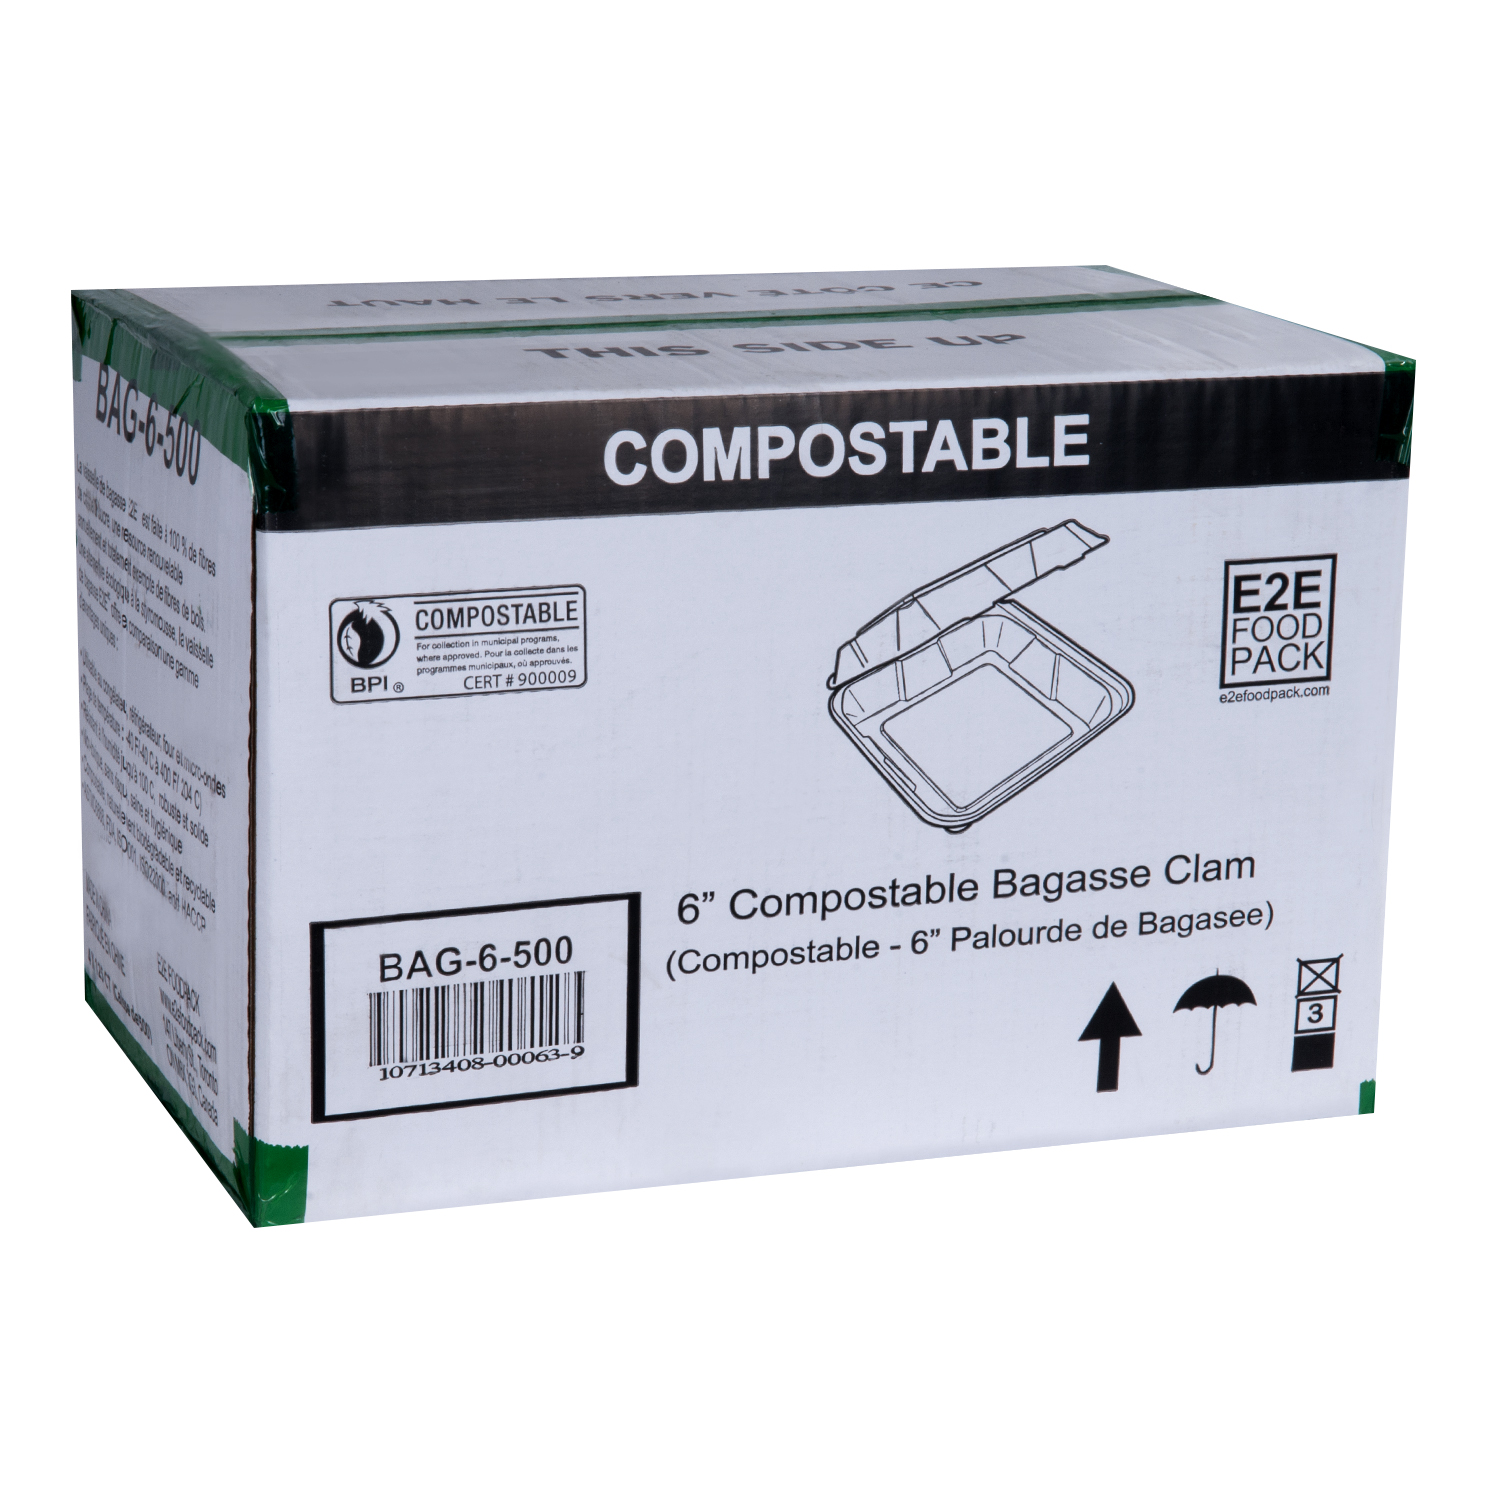 YesEco Sustainable and Compostable Packaging